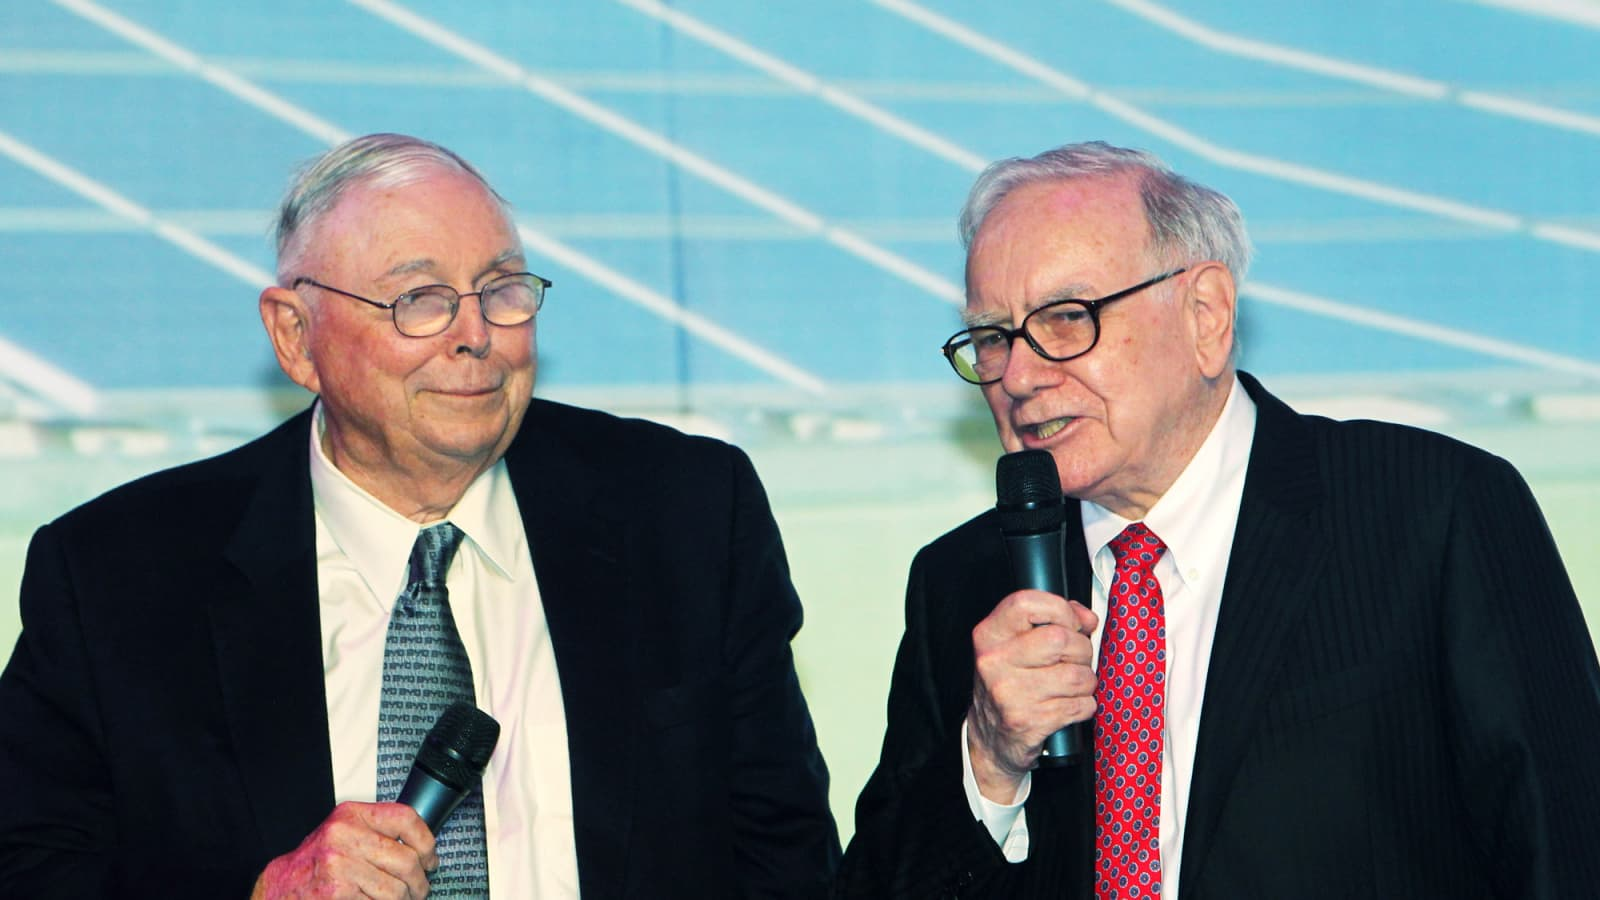 Billionaire Charlie Munger praises this 1 skill of Warren Buffett's